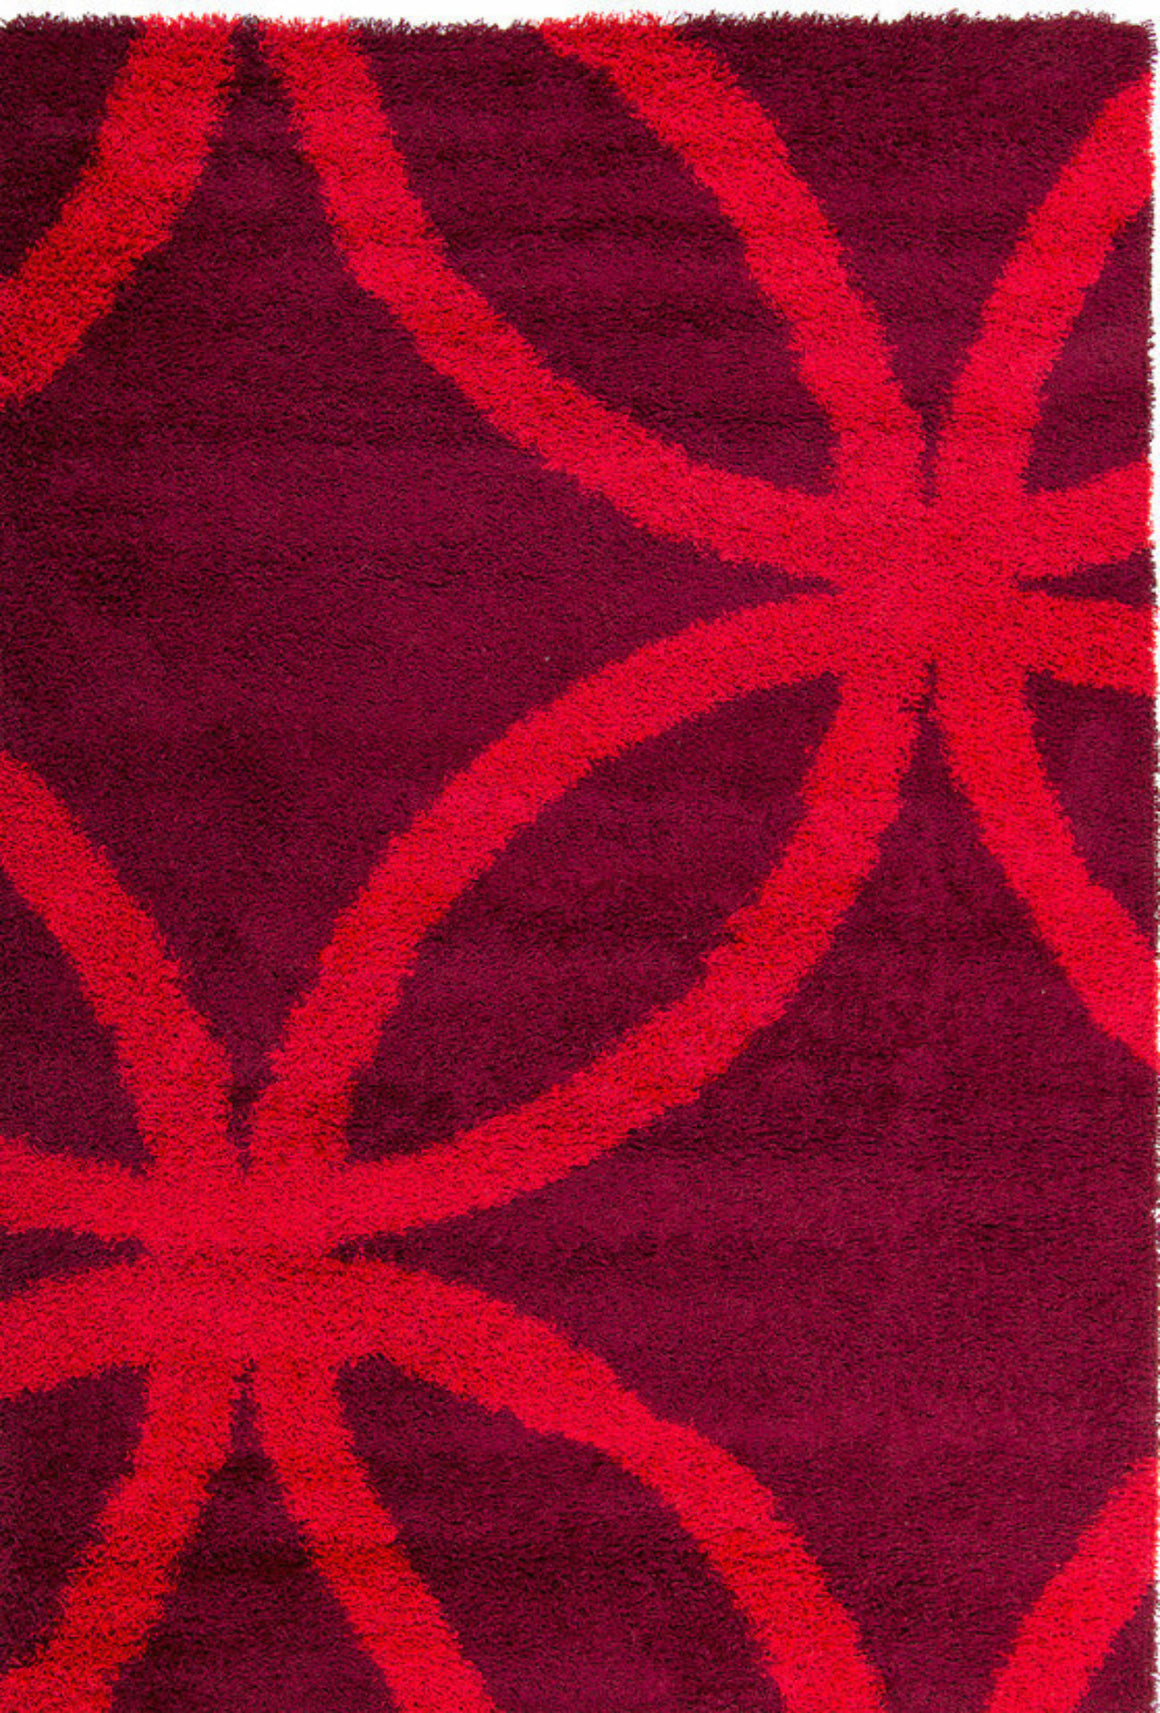 Tapete Montreal 3326, 2P46 Aubergine/Red